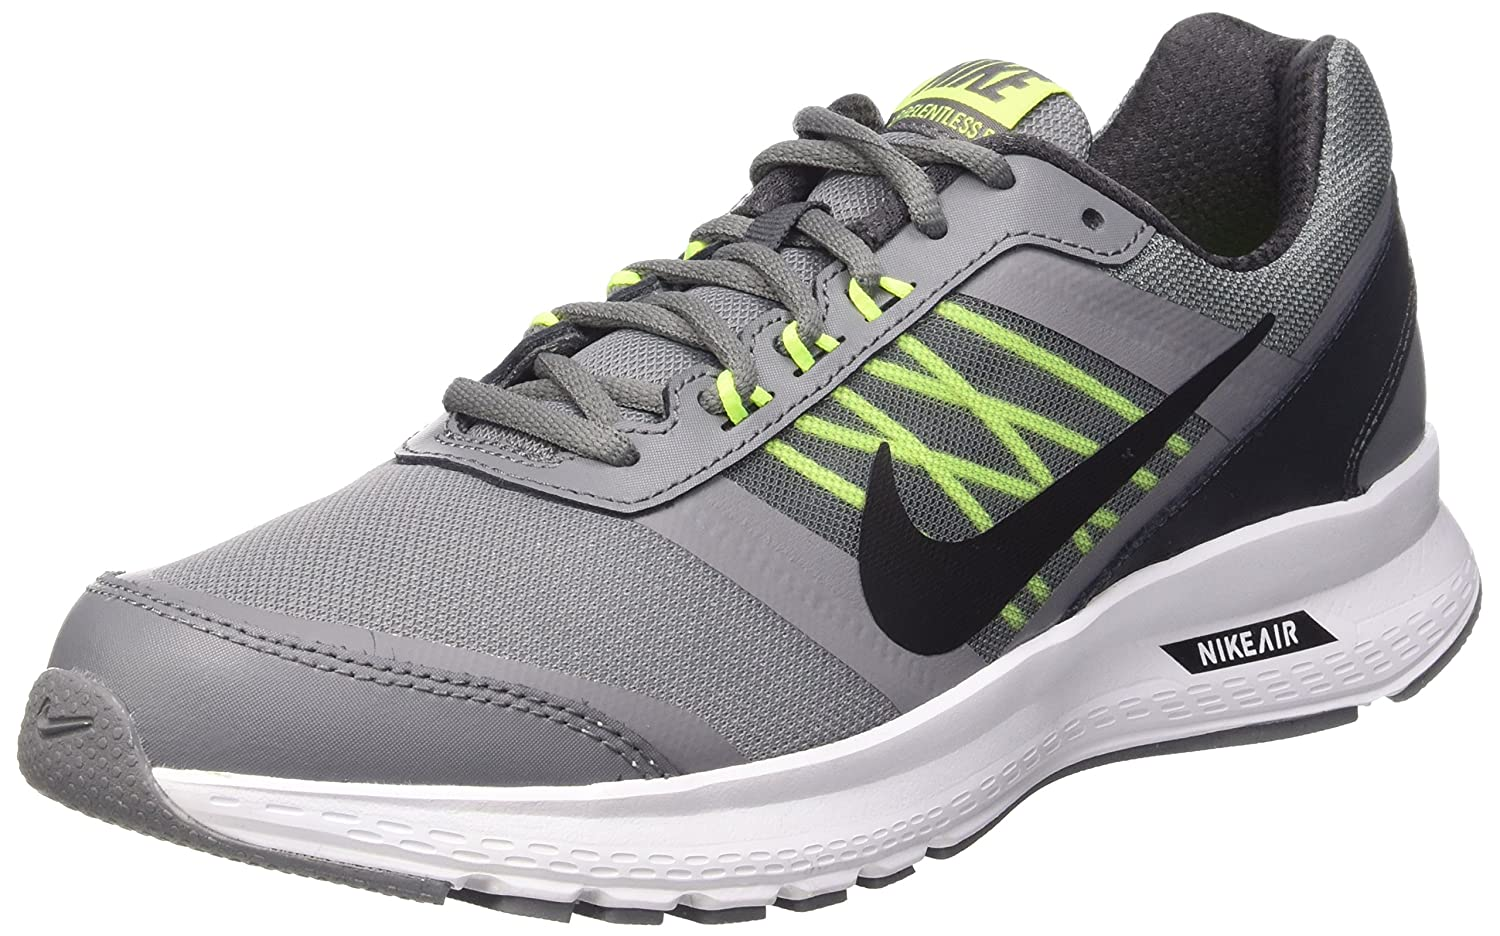 6d0a6825252d8 Nike Men's Air Relentless 5 Running Shoe